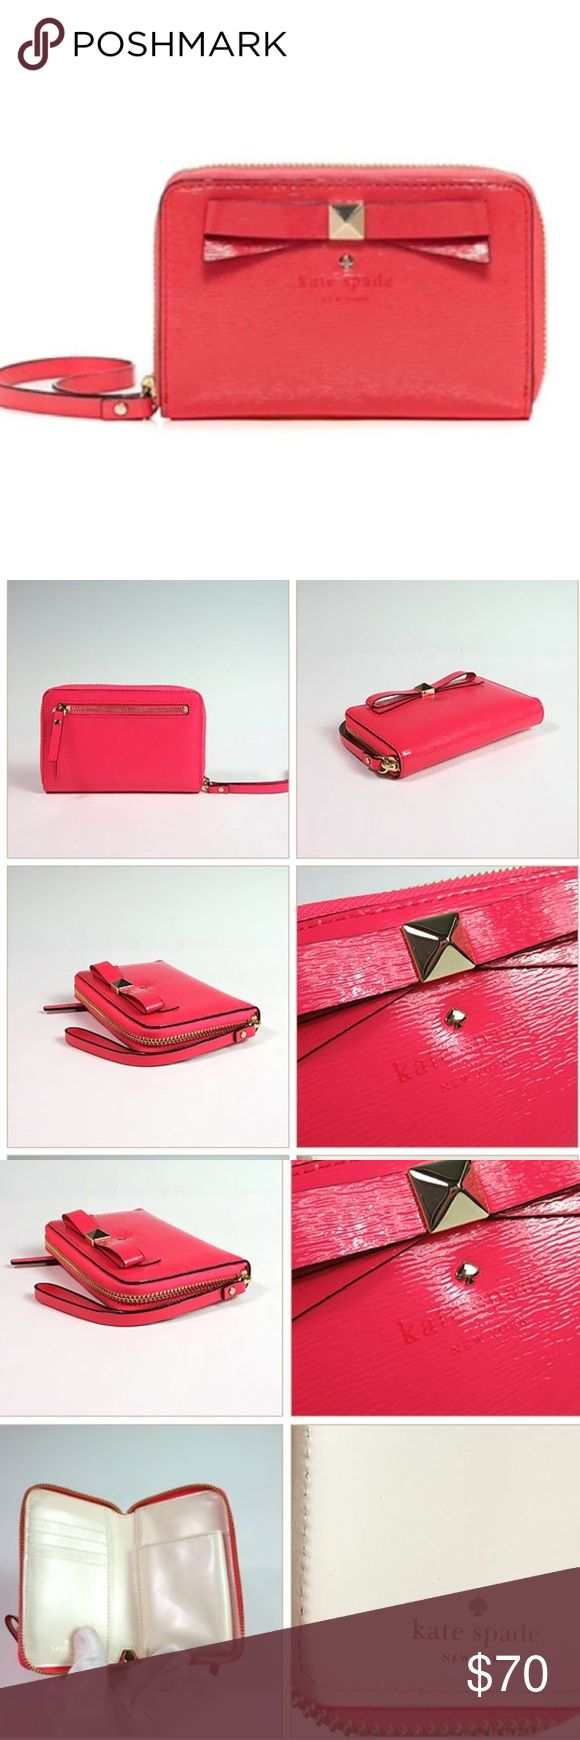 Kate Spade Beacon Court Louie Wristlet in mint condition; strawberry color; patent leather; holds iPhone 4/5; holds 5 cards; rear coin compartment; comes with original box and tags Kate Spade Bags Clutches & Wristlets